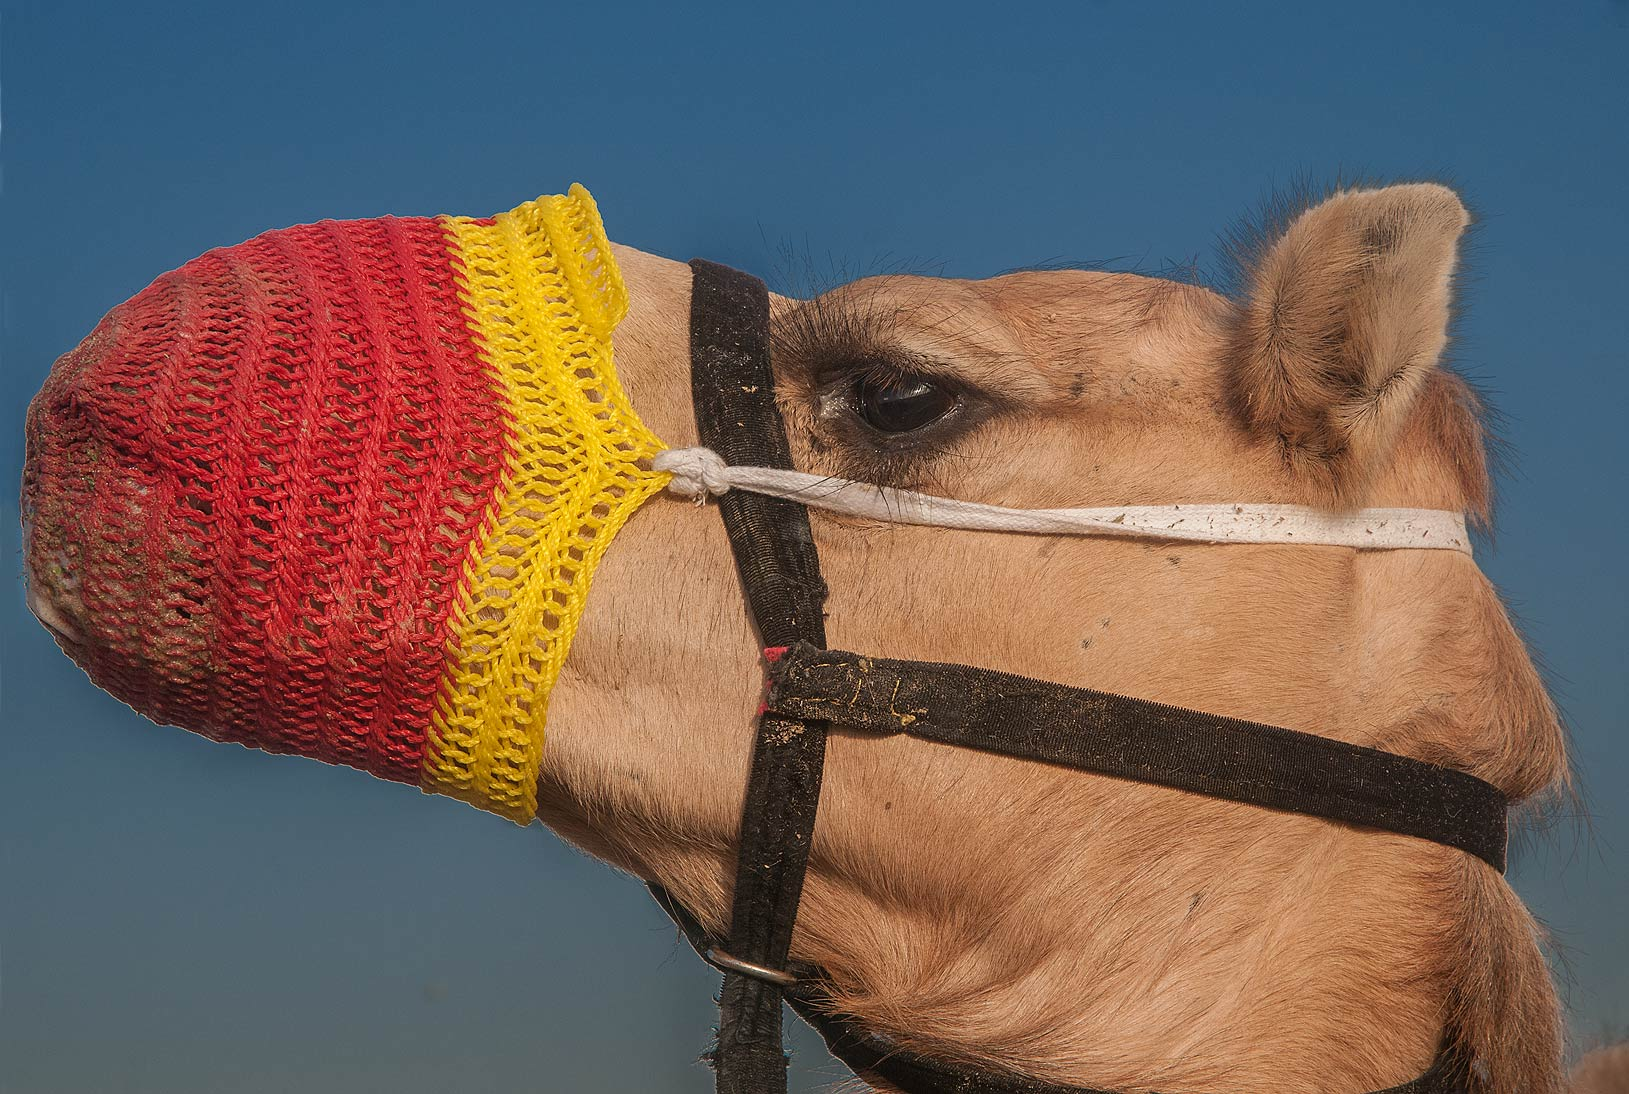 Camel sporting red muzzle in Livestock Market, Wholesale Markets area. Doha, Qatar